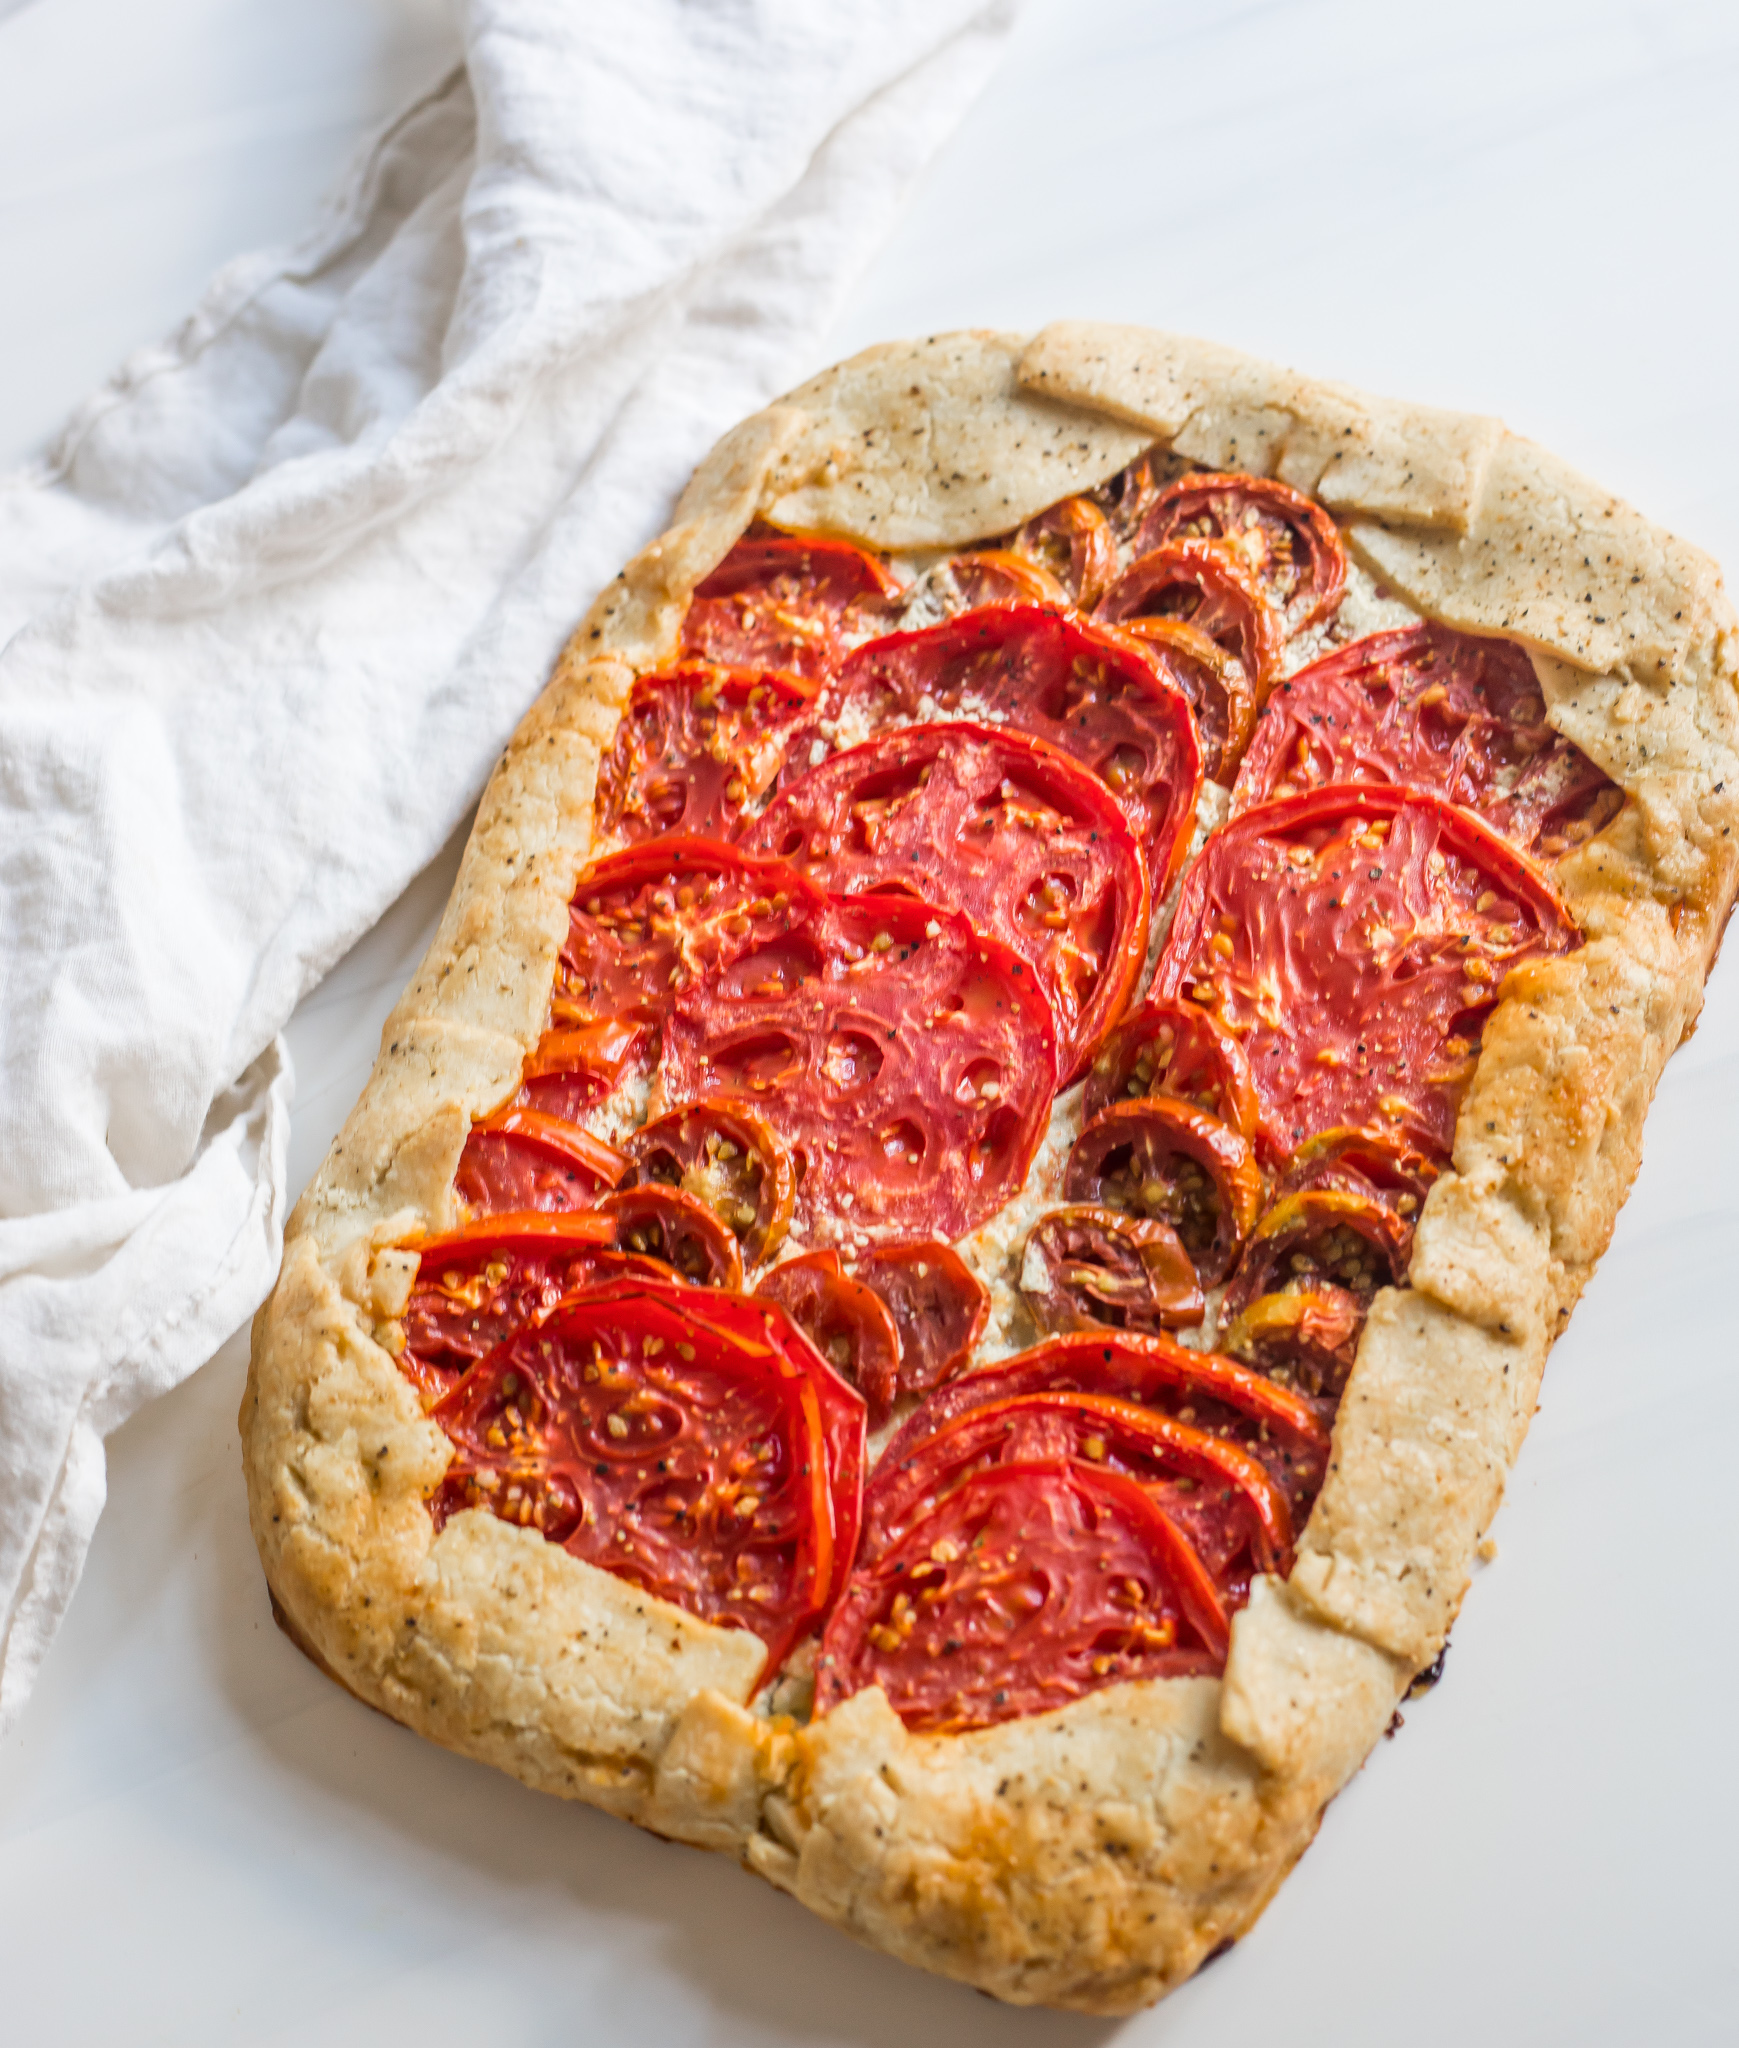 Tomato Pie with Cornmeal Crust (GF, DF, V*)